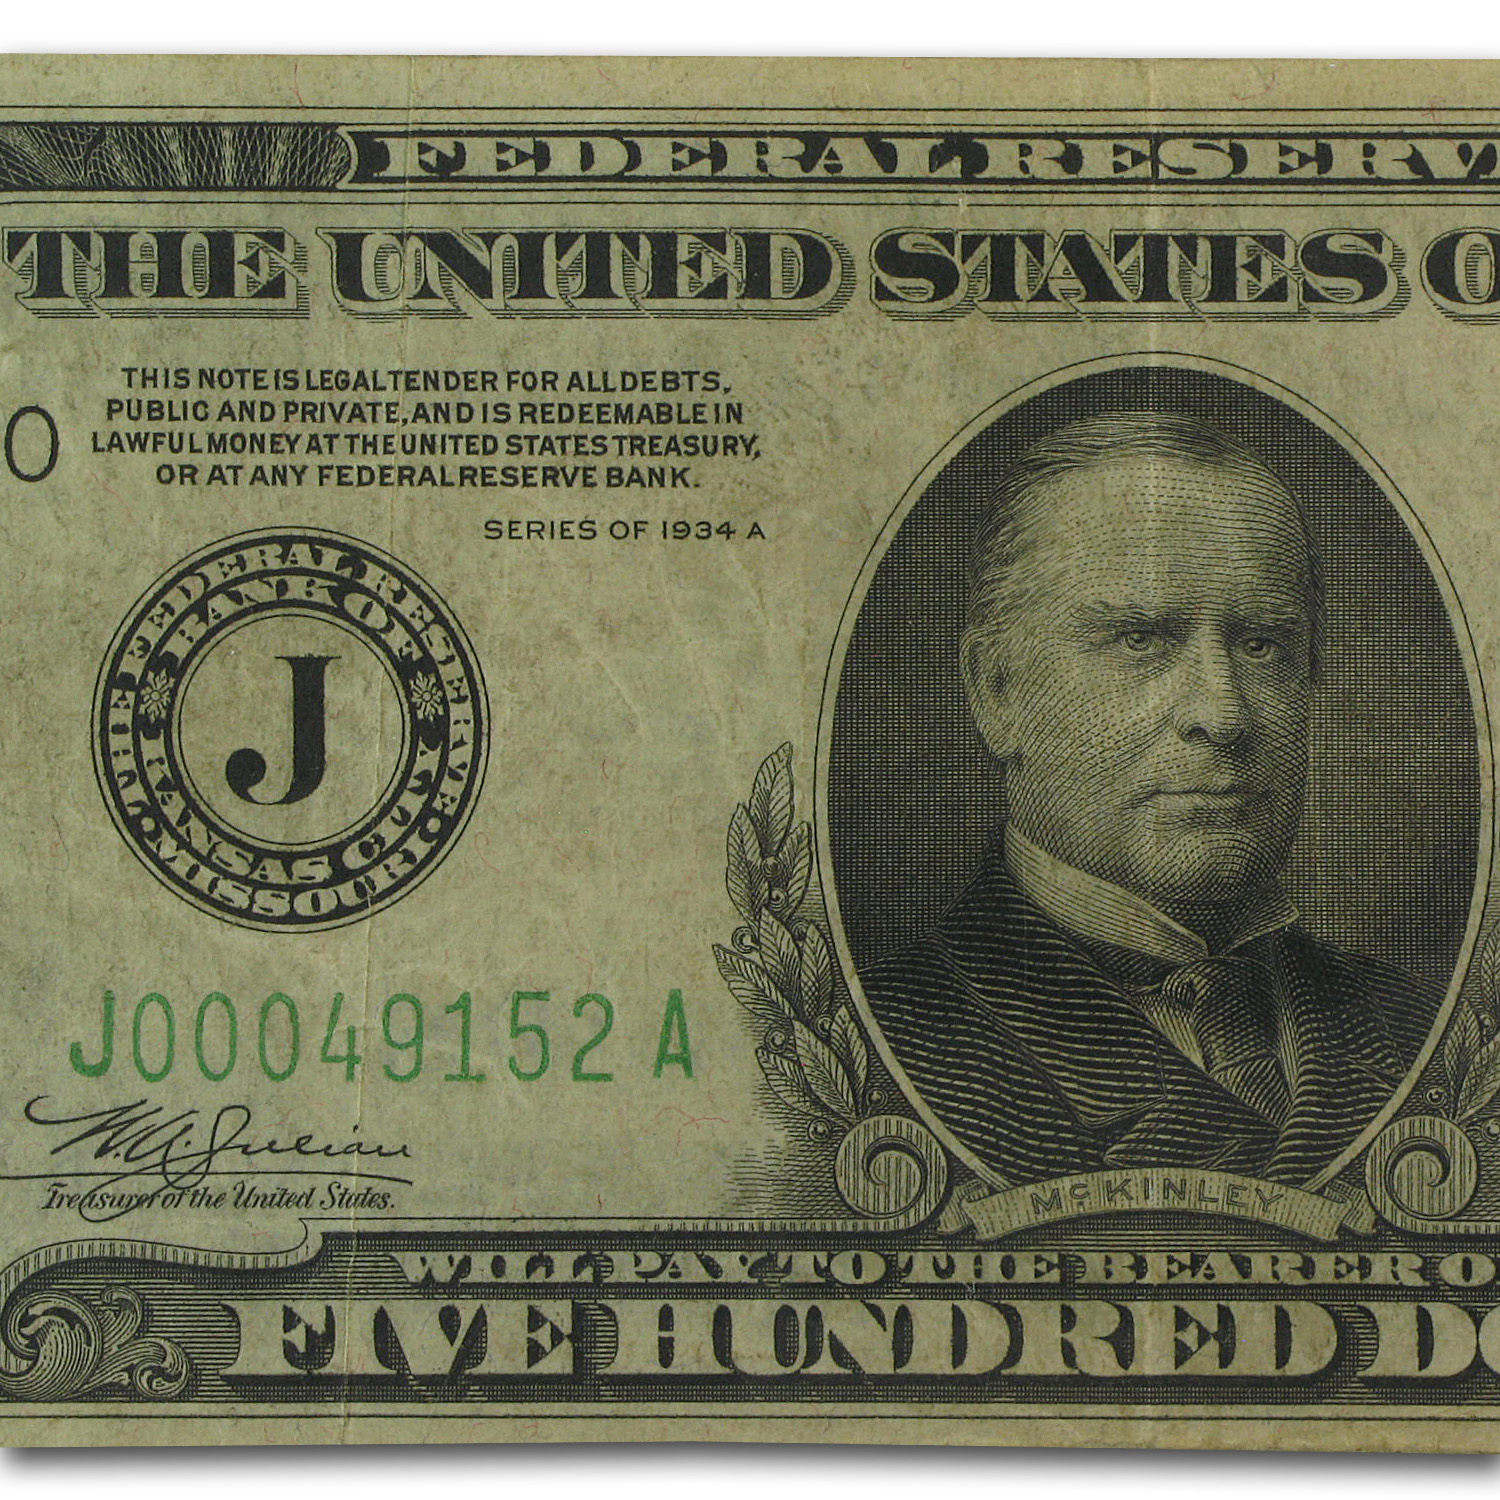 1934-A (J-Kansas City) $500 FRN PCGS (Very Fine) 30